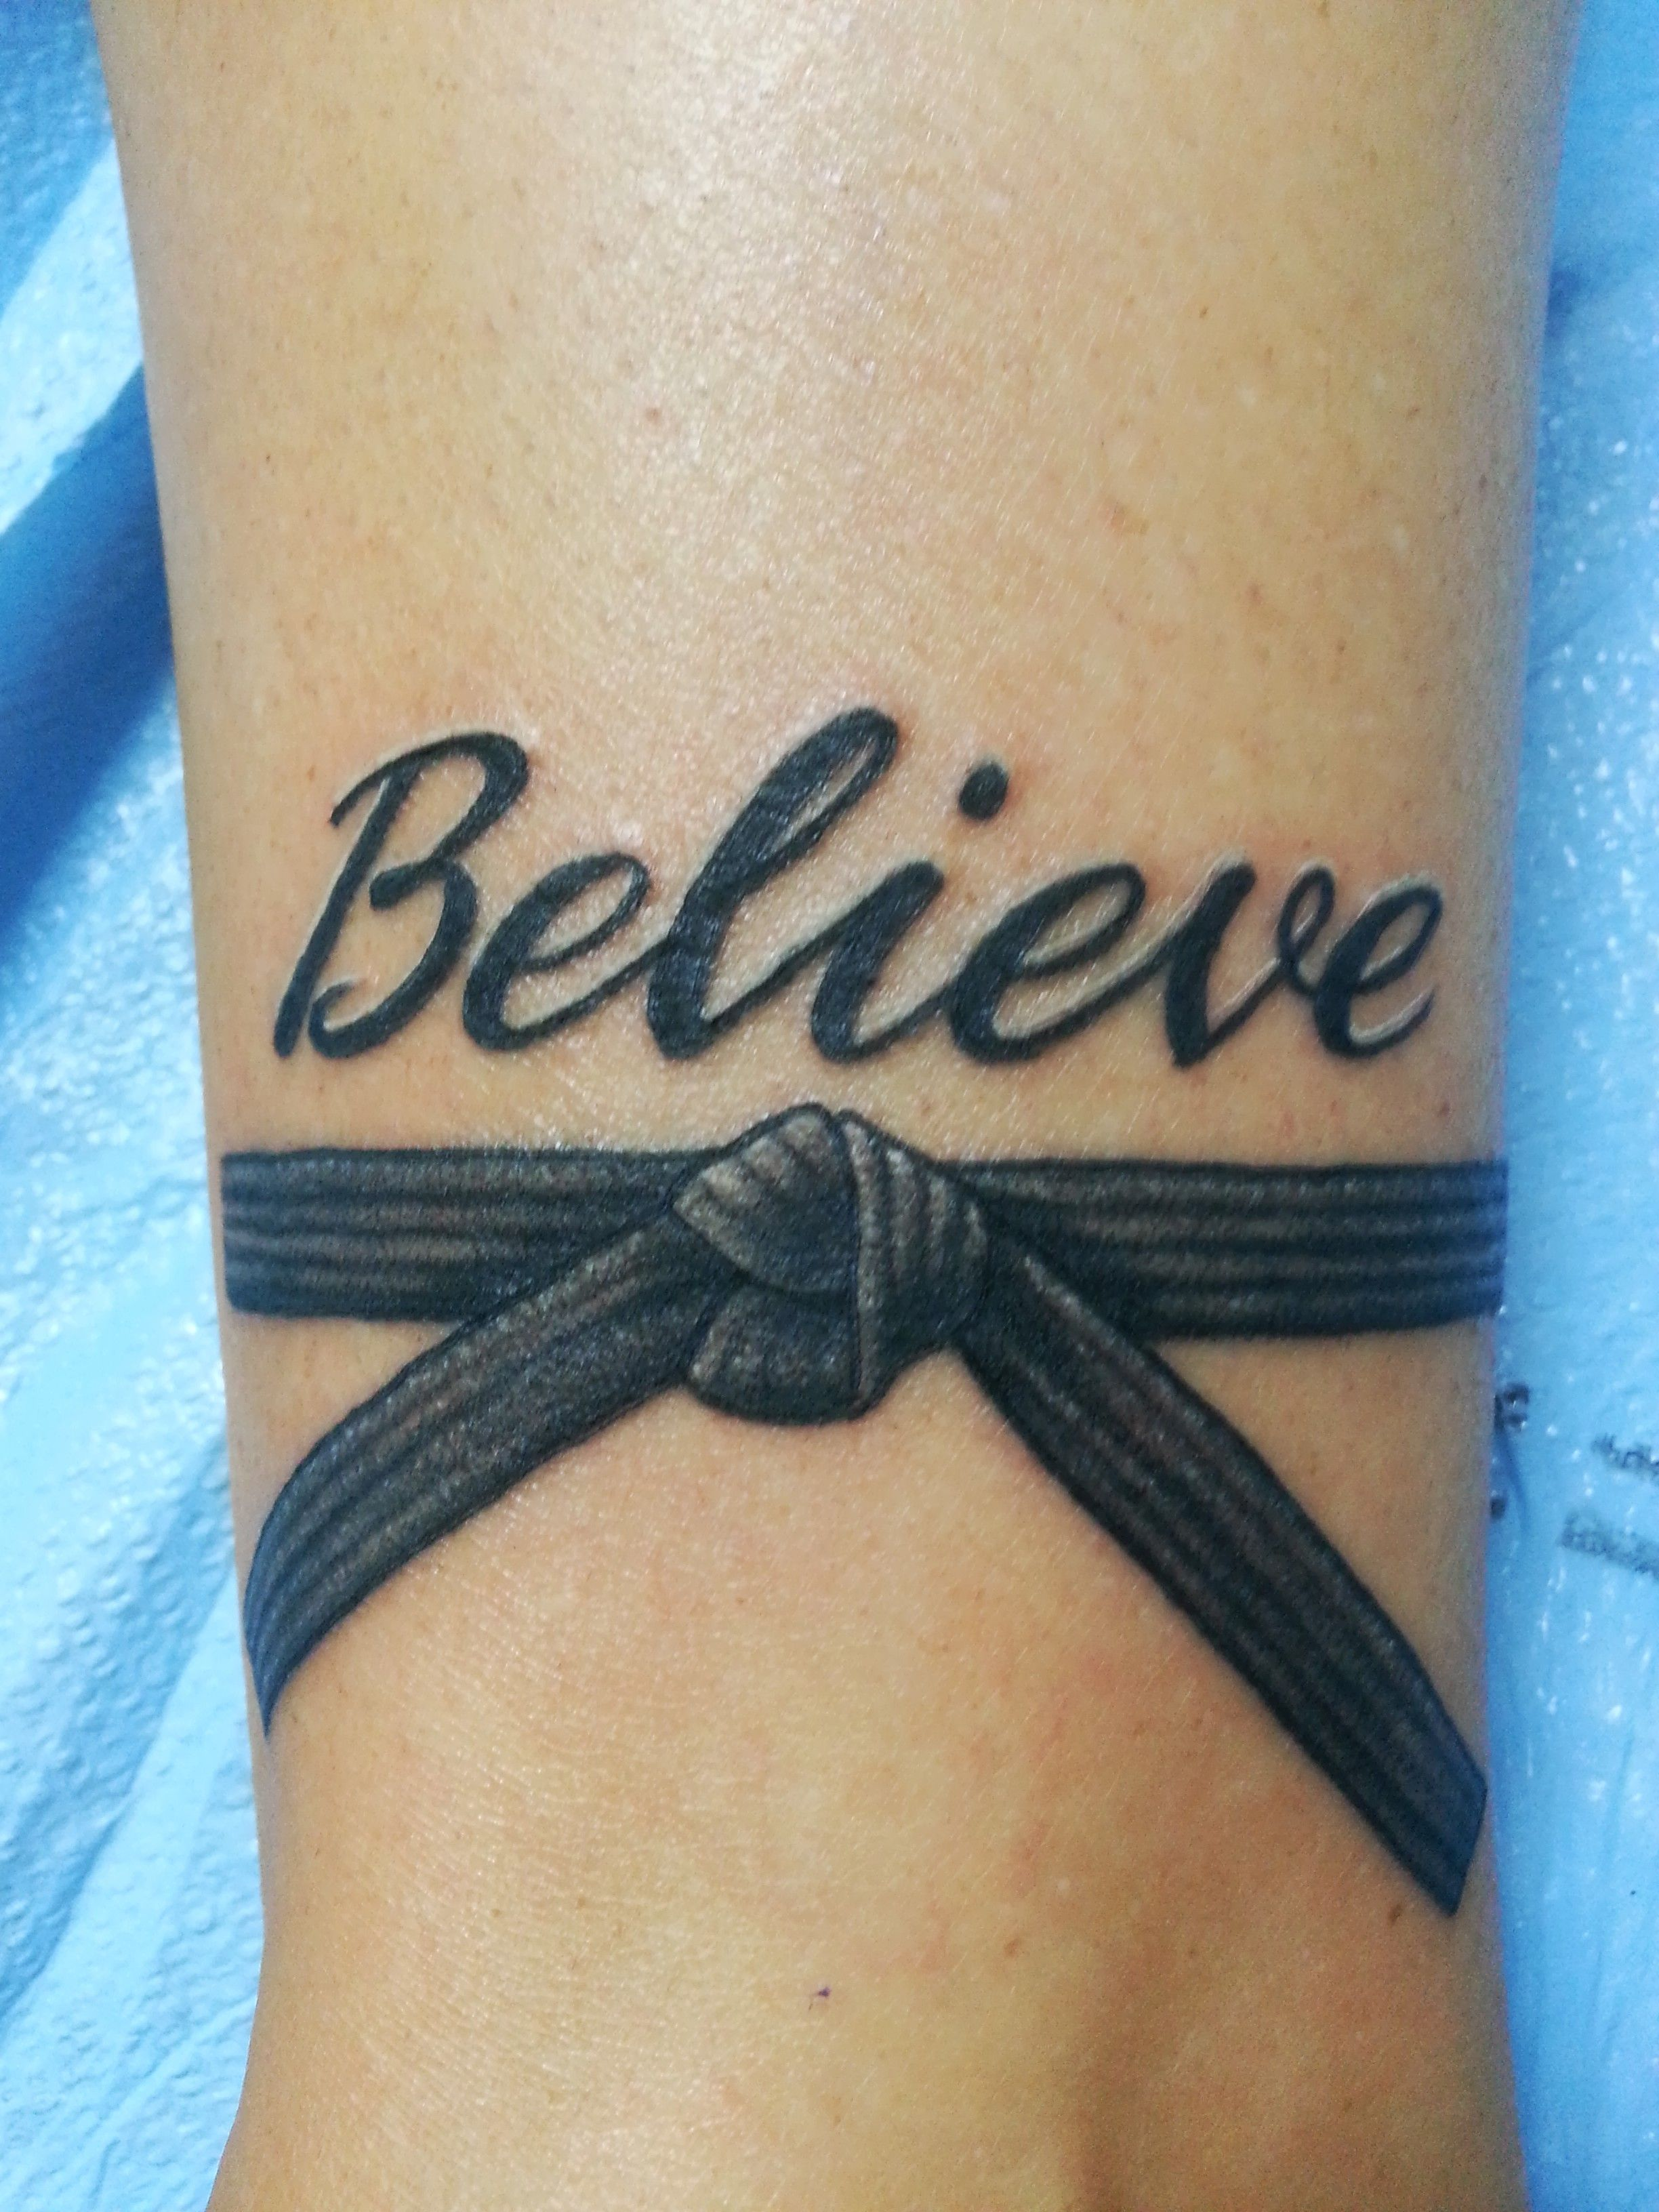 Pin By Kristy Roese On Martial Arts Taekwondo Tattoo Bjj Tattoo Martial Arts Tattoos